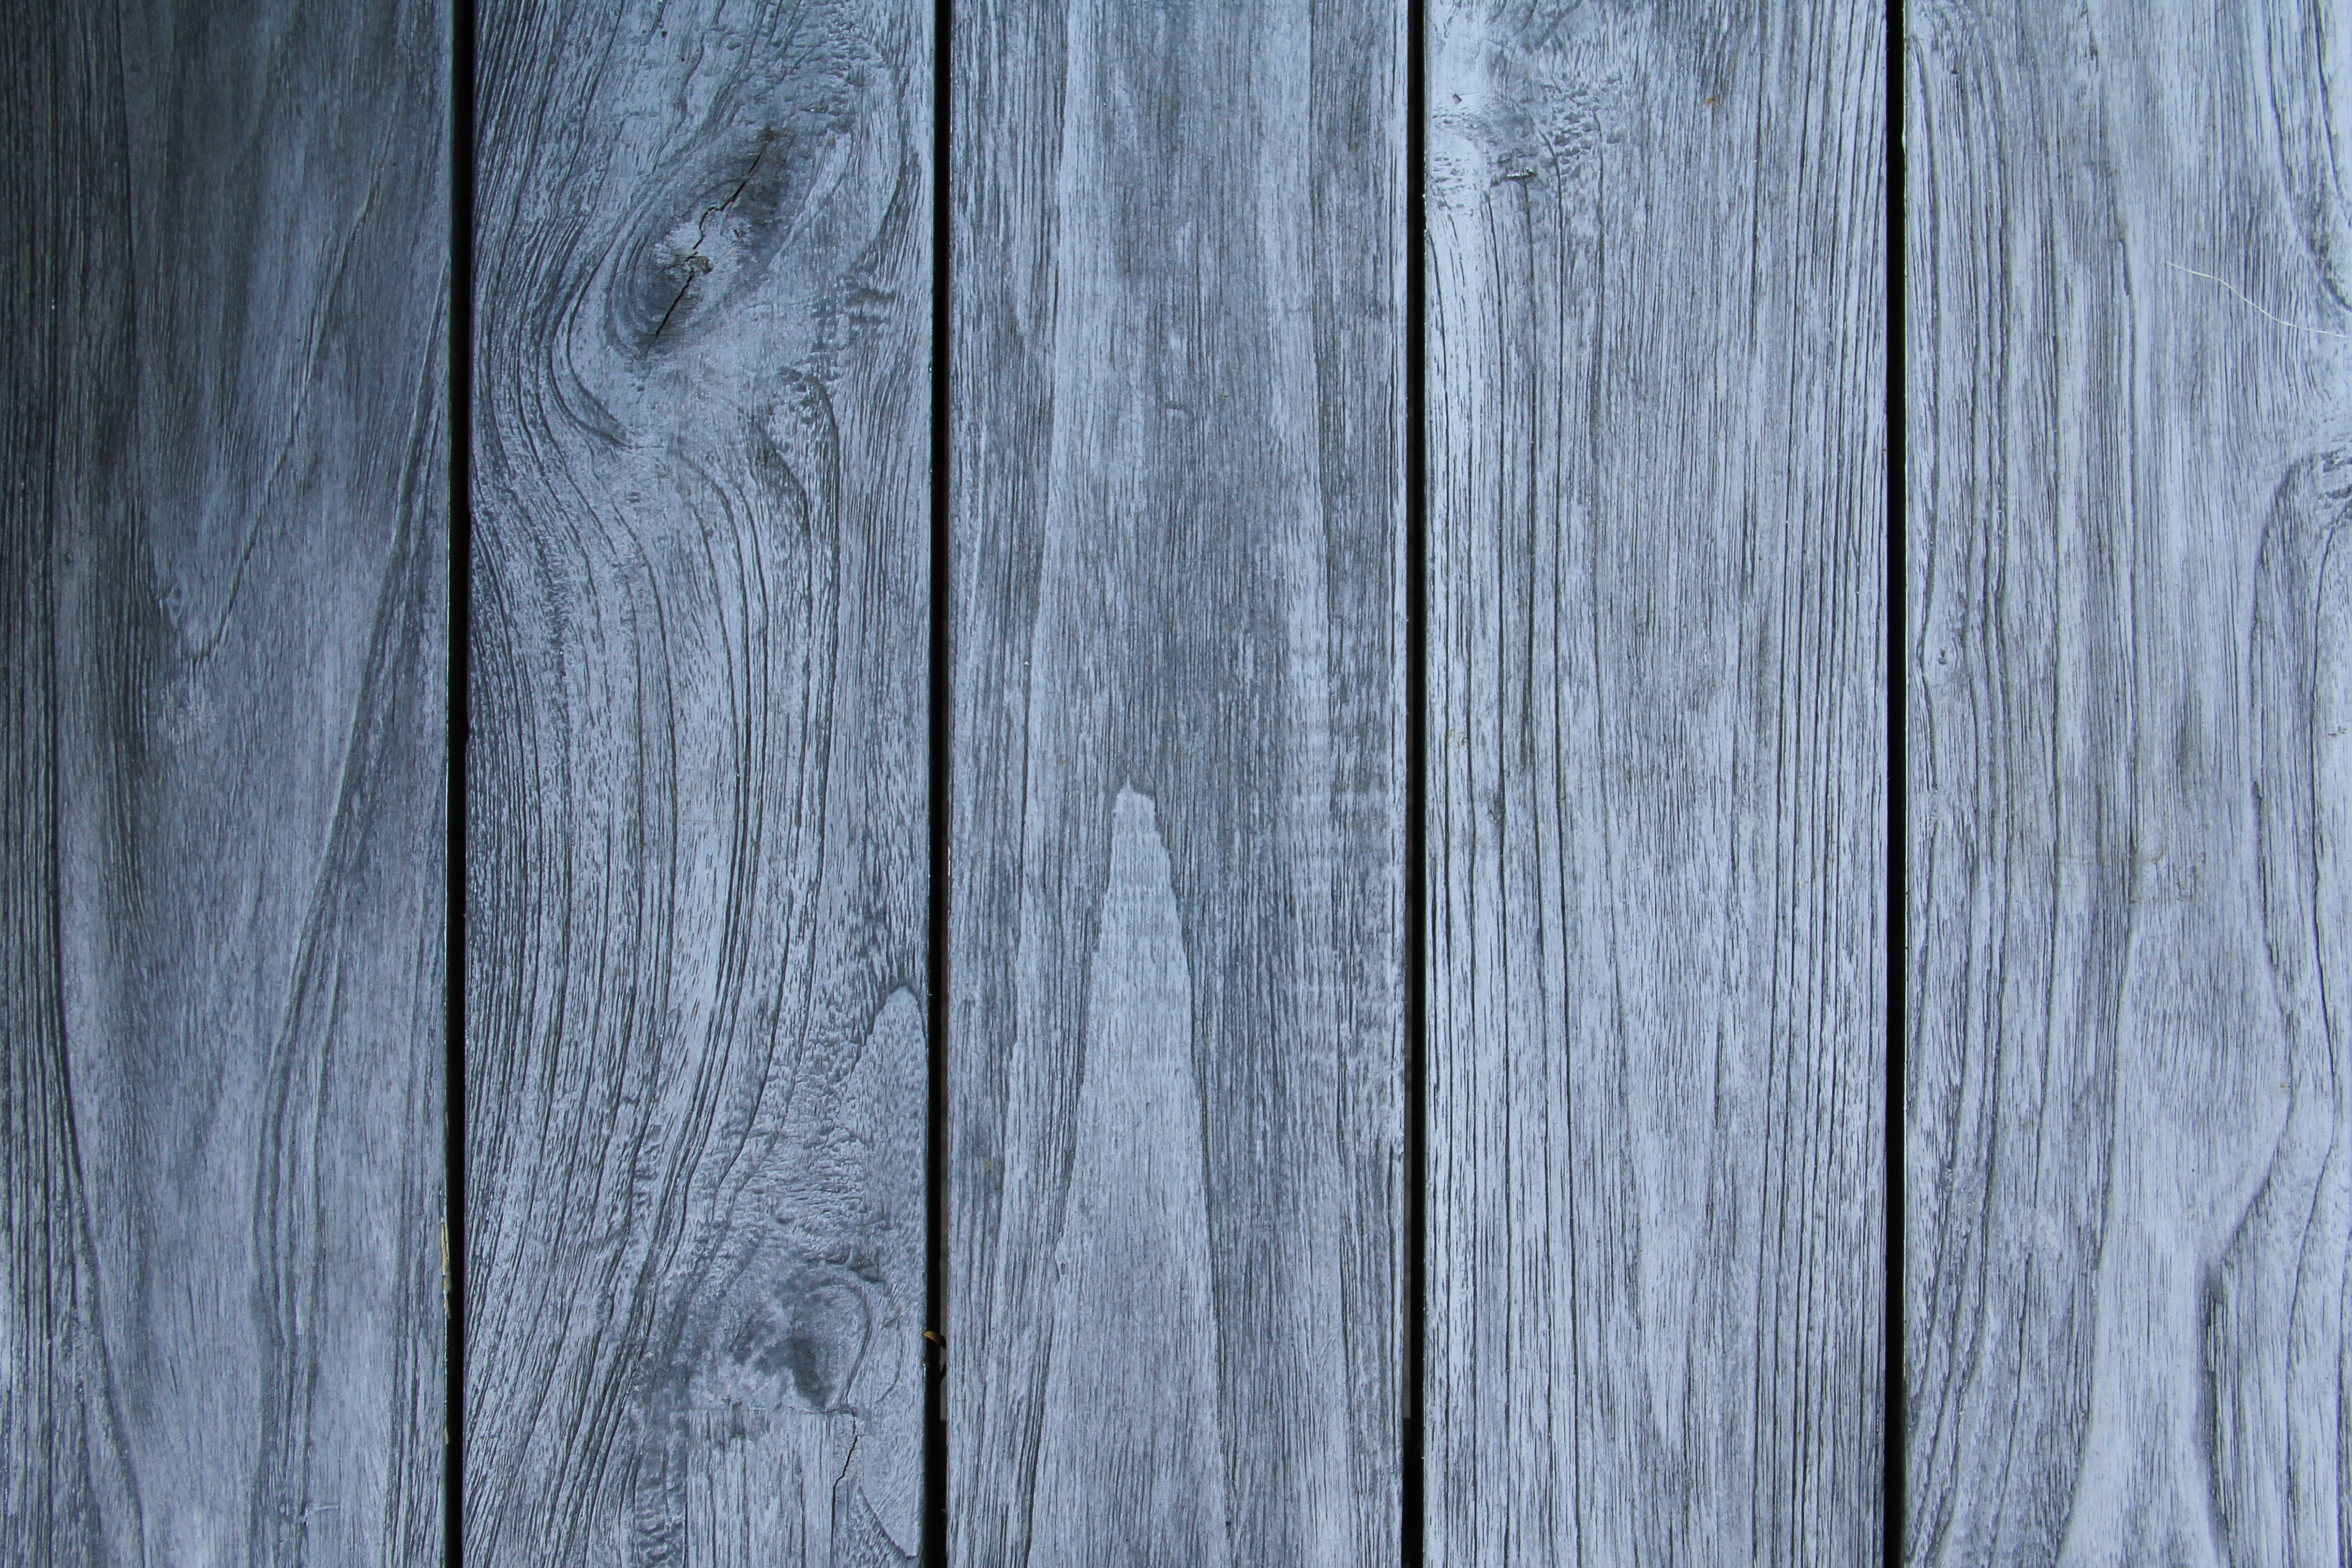 Grey wood texture scale grain plank stock wallpaper oak texturex grey wood texture scale grain plank stock wallpaper oak texturex free and premium textures and high resolution graphics altavistaventures Choice Image